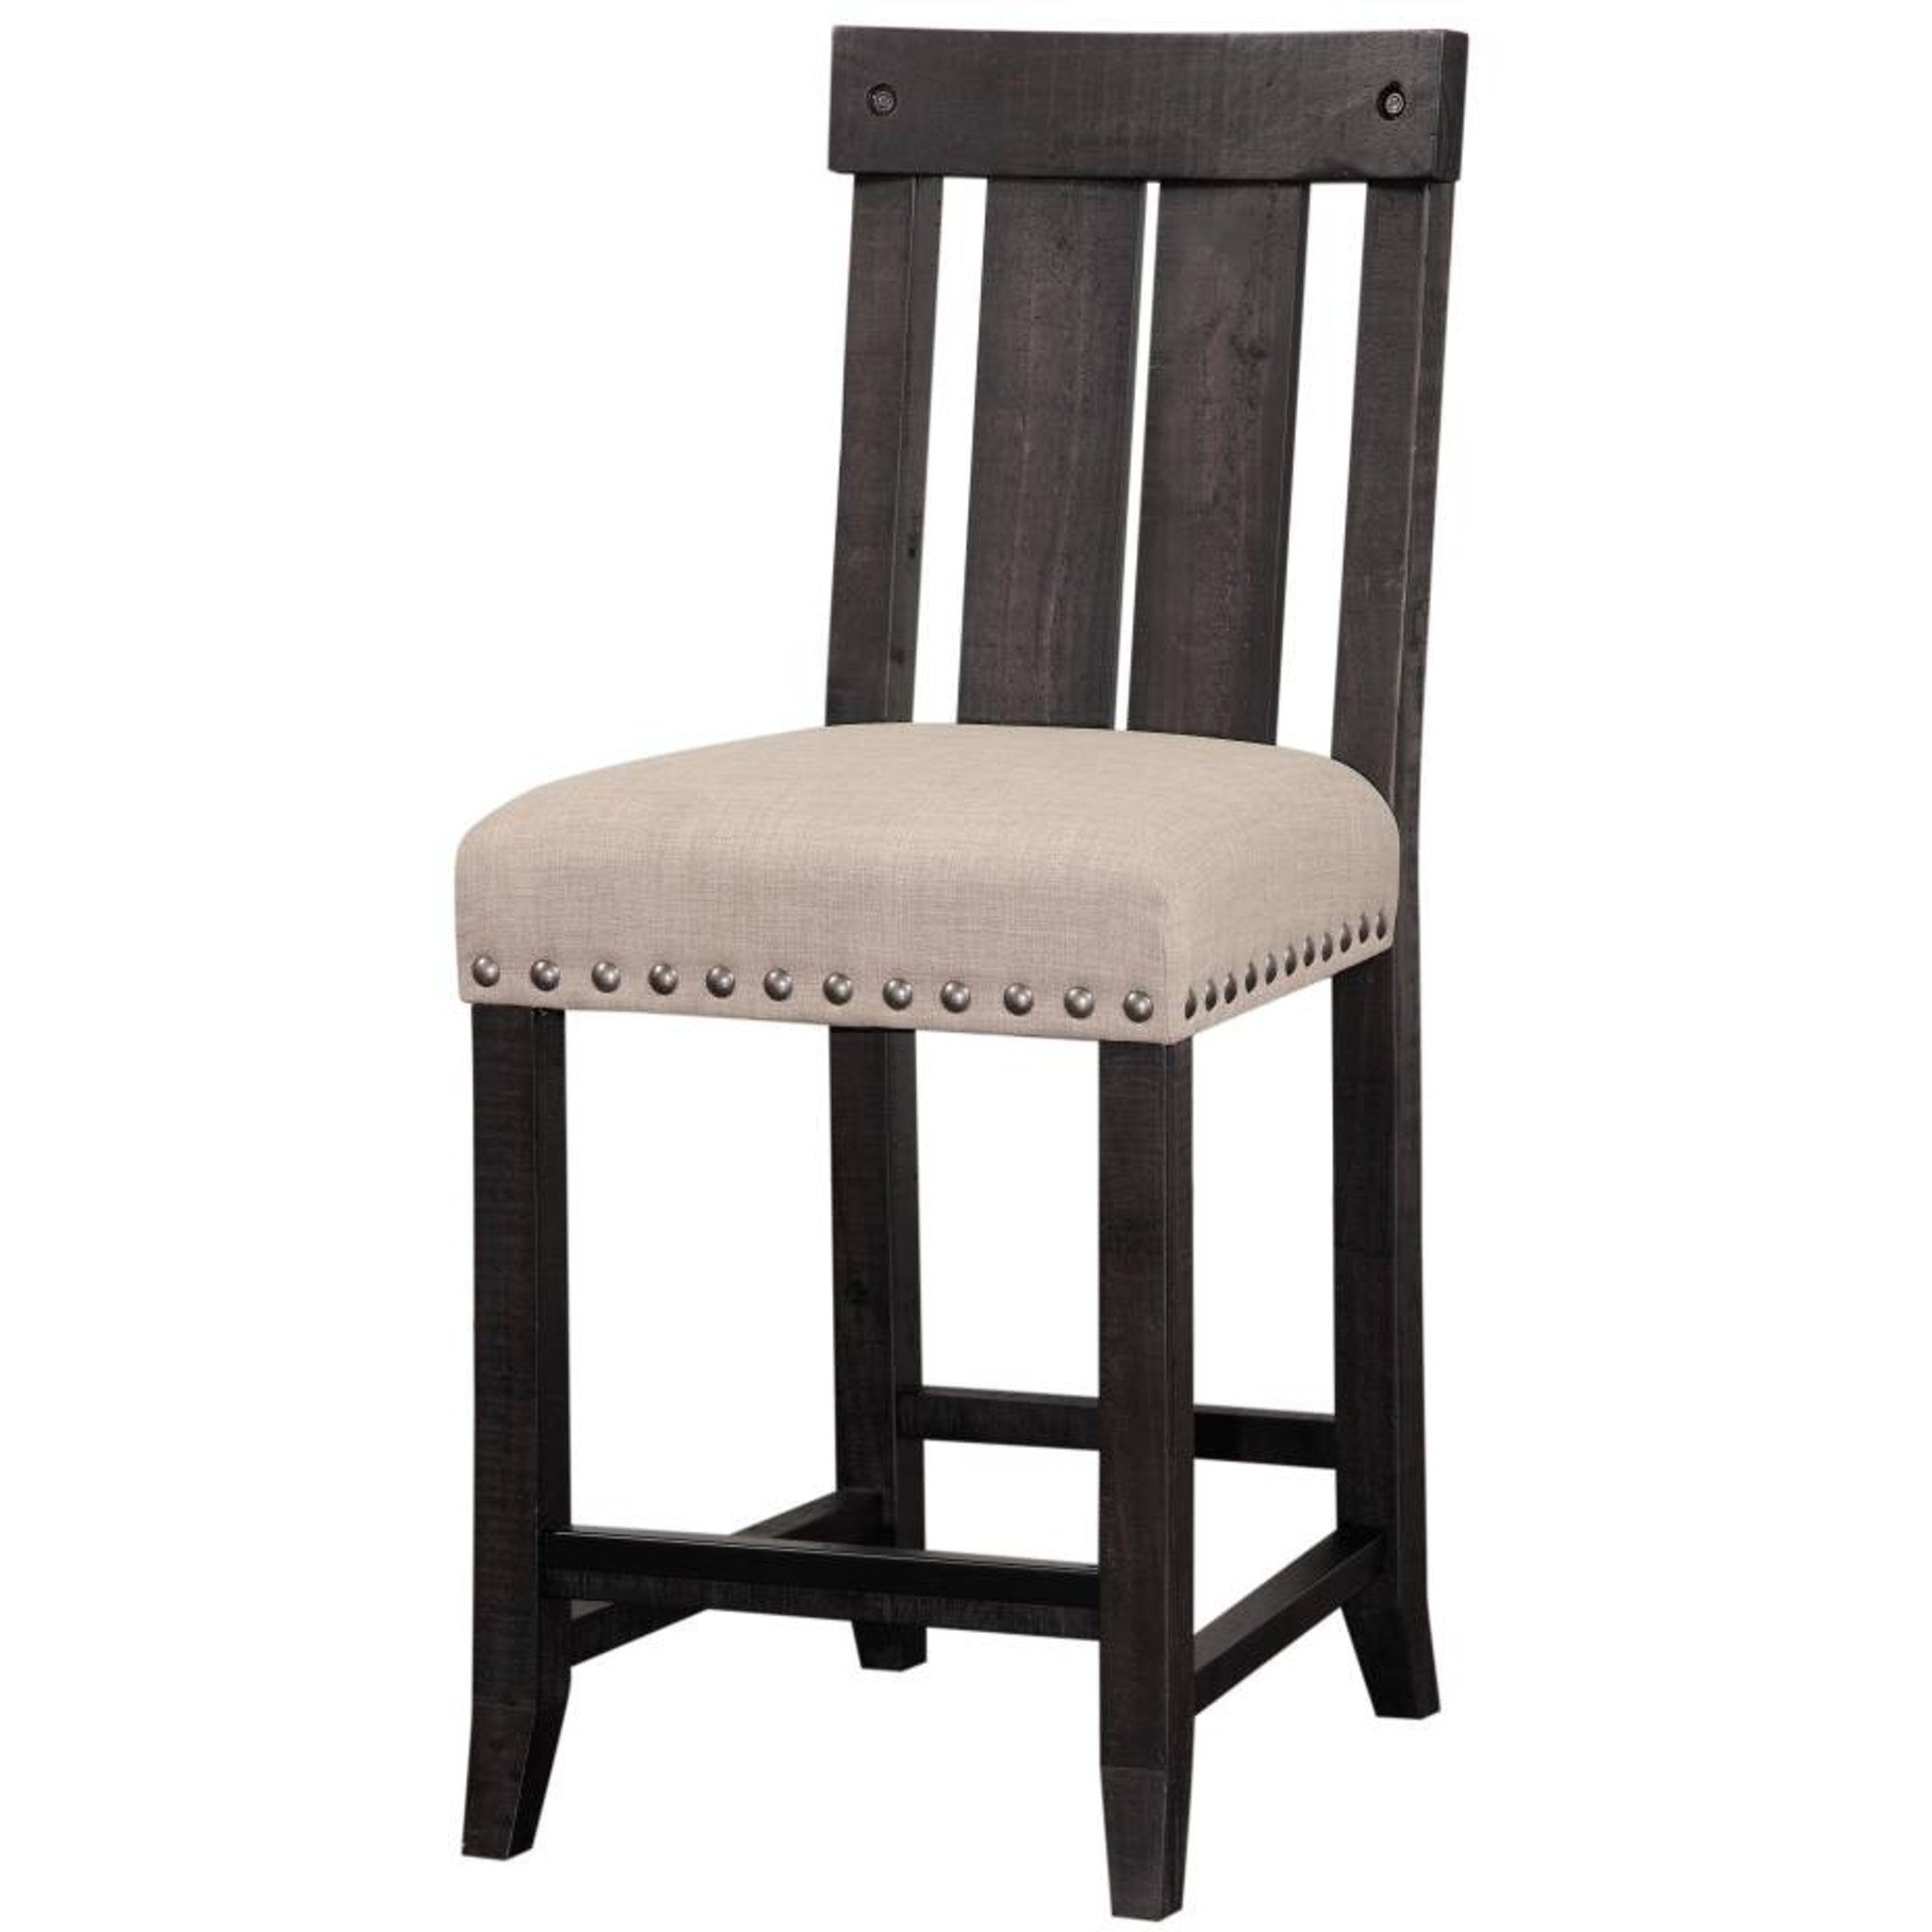 Yosemite Solid Wood Kitchen Counter Stool in Cafe (set of 2)